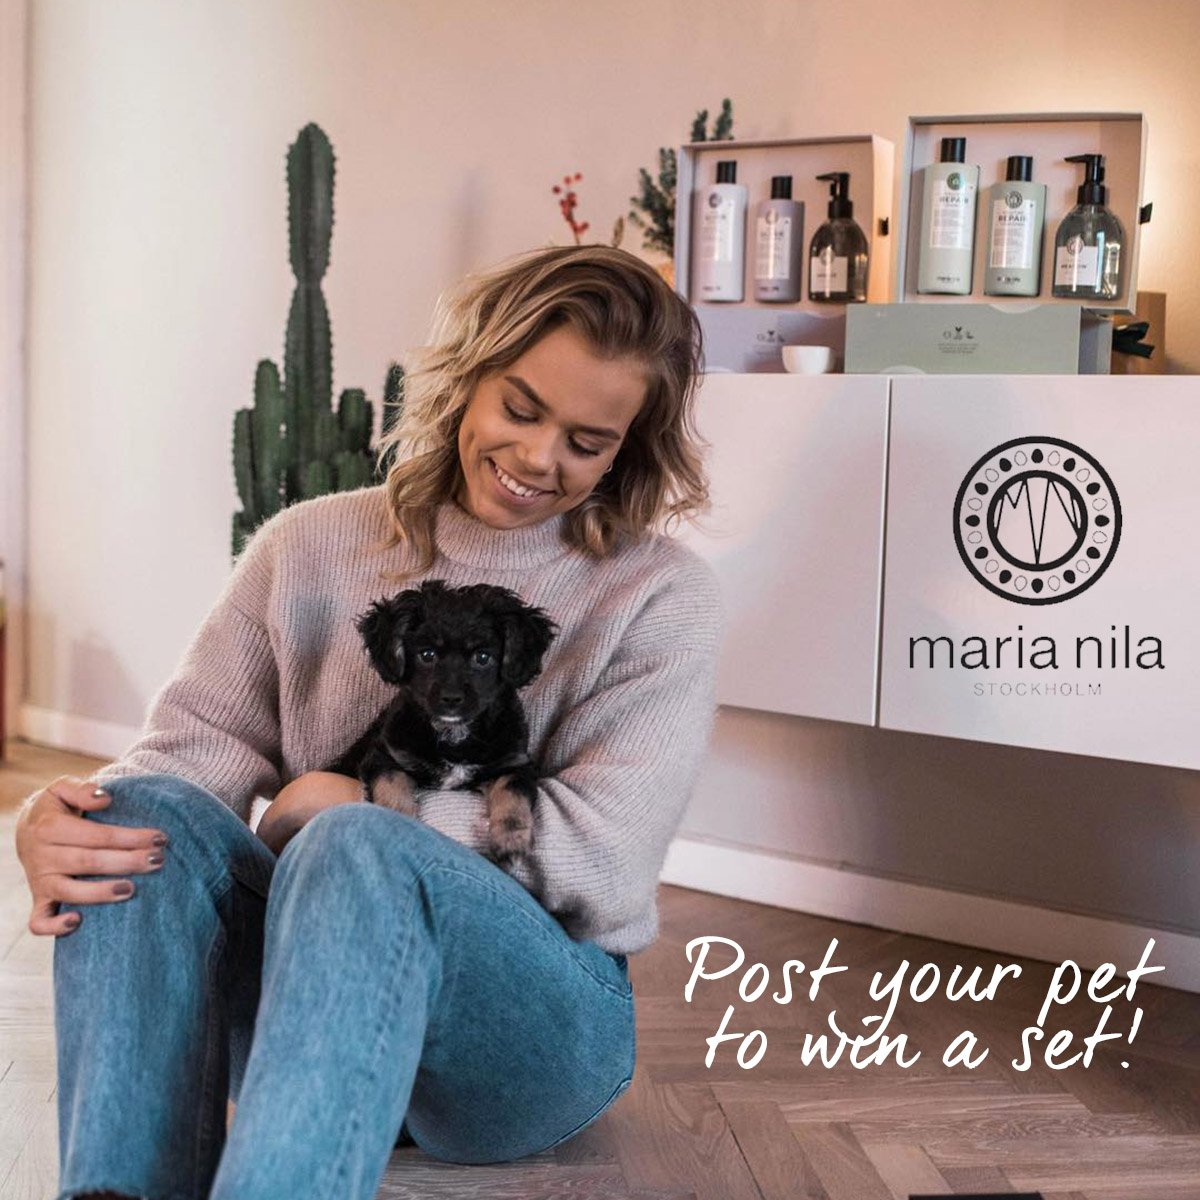 Head to our Facebook to enter - today only!  #PostYourPooch for #NationalPetDay  🥰🥰🥰 https://t.co/3wqm1sXpr2  https://t.co/6HDse78qp5  #competition #beauty #hair #vegan #crueltyfree #salonbrands #professionalfavourites https://t.co/Mr2G6FFk1b